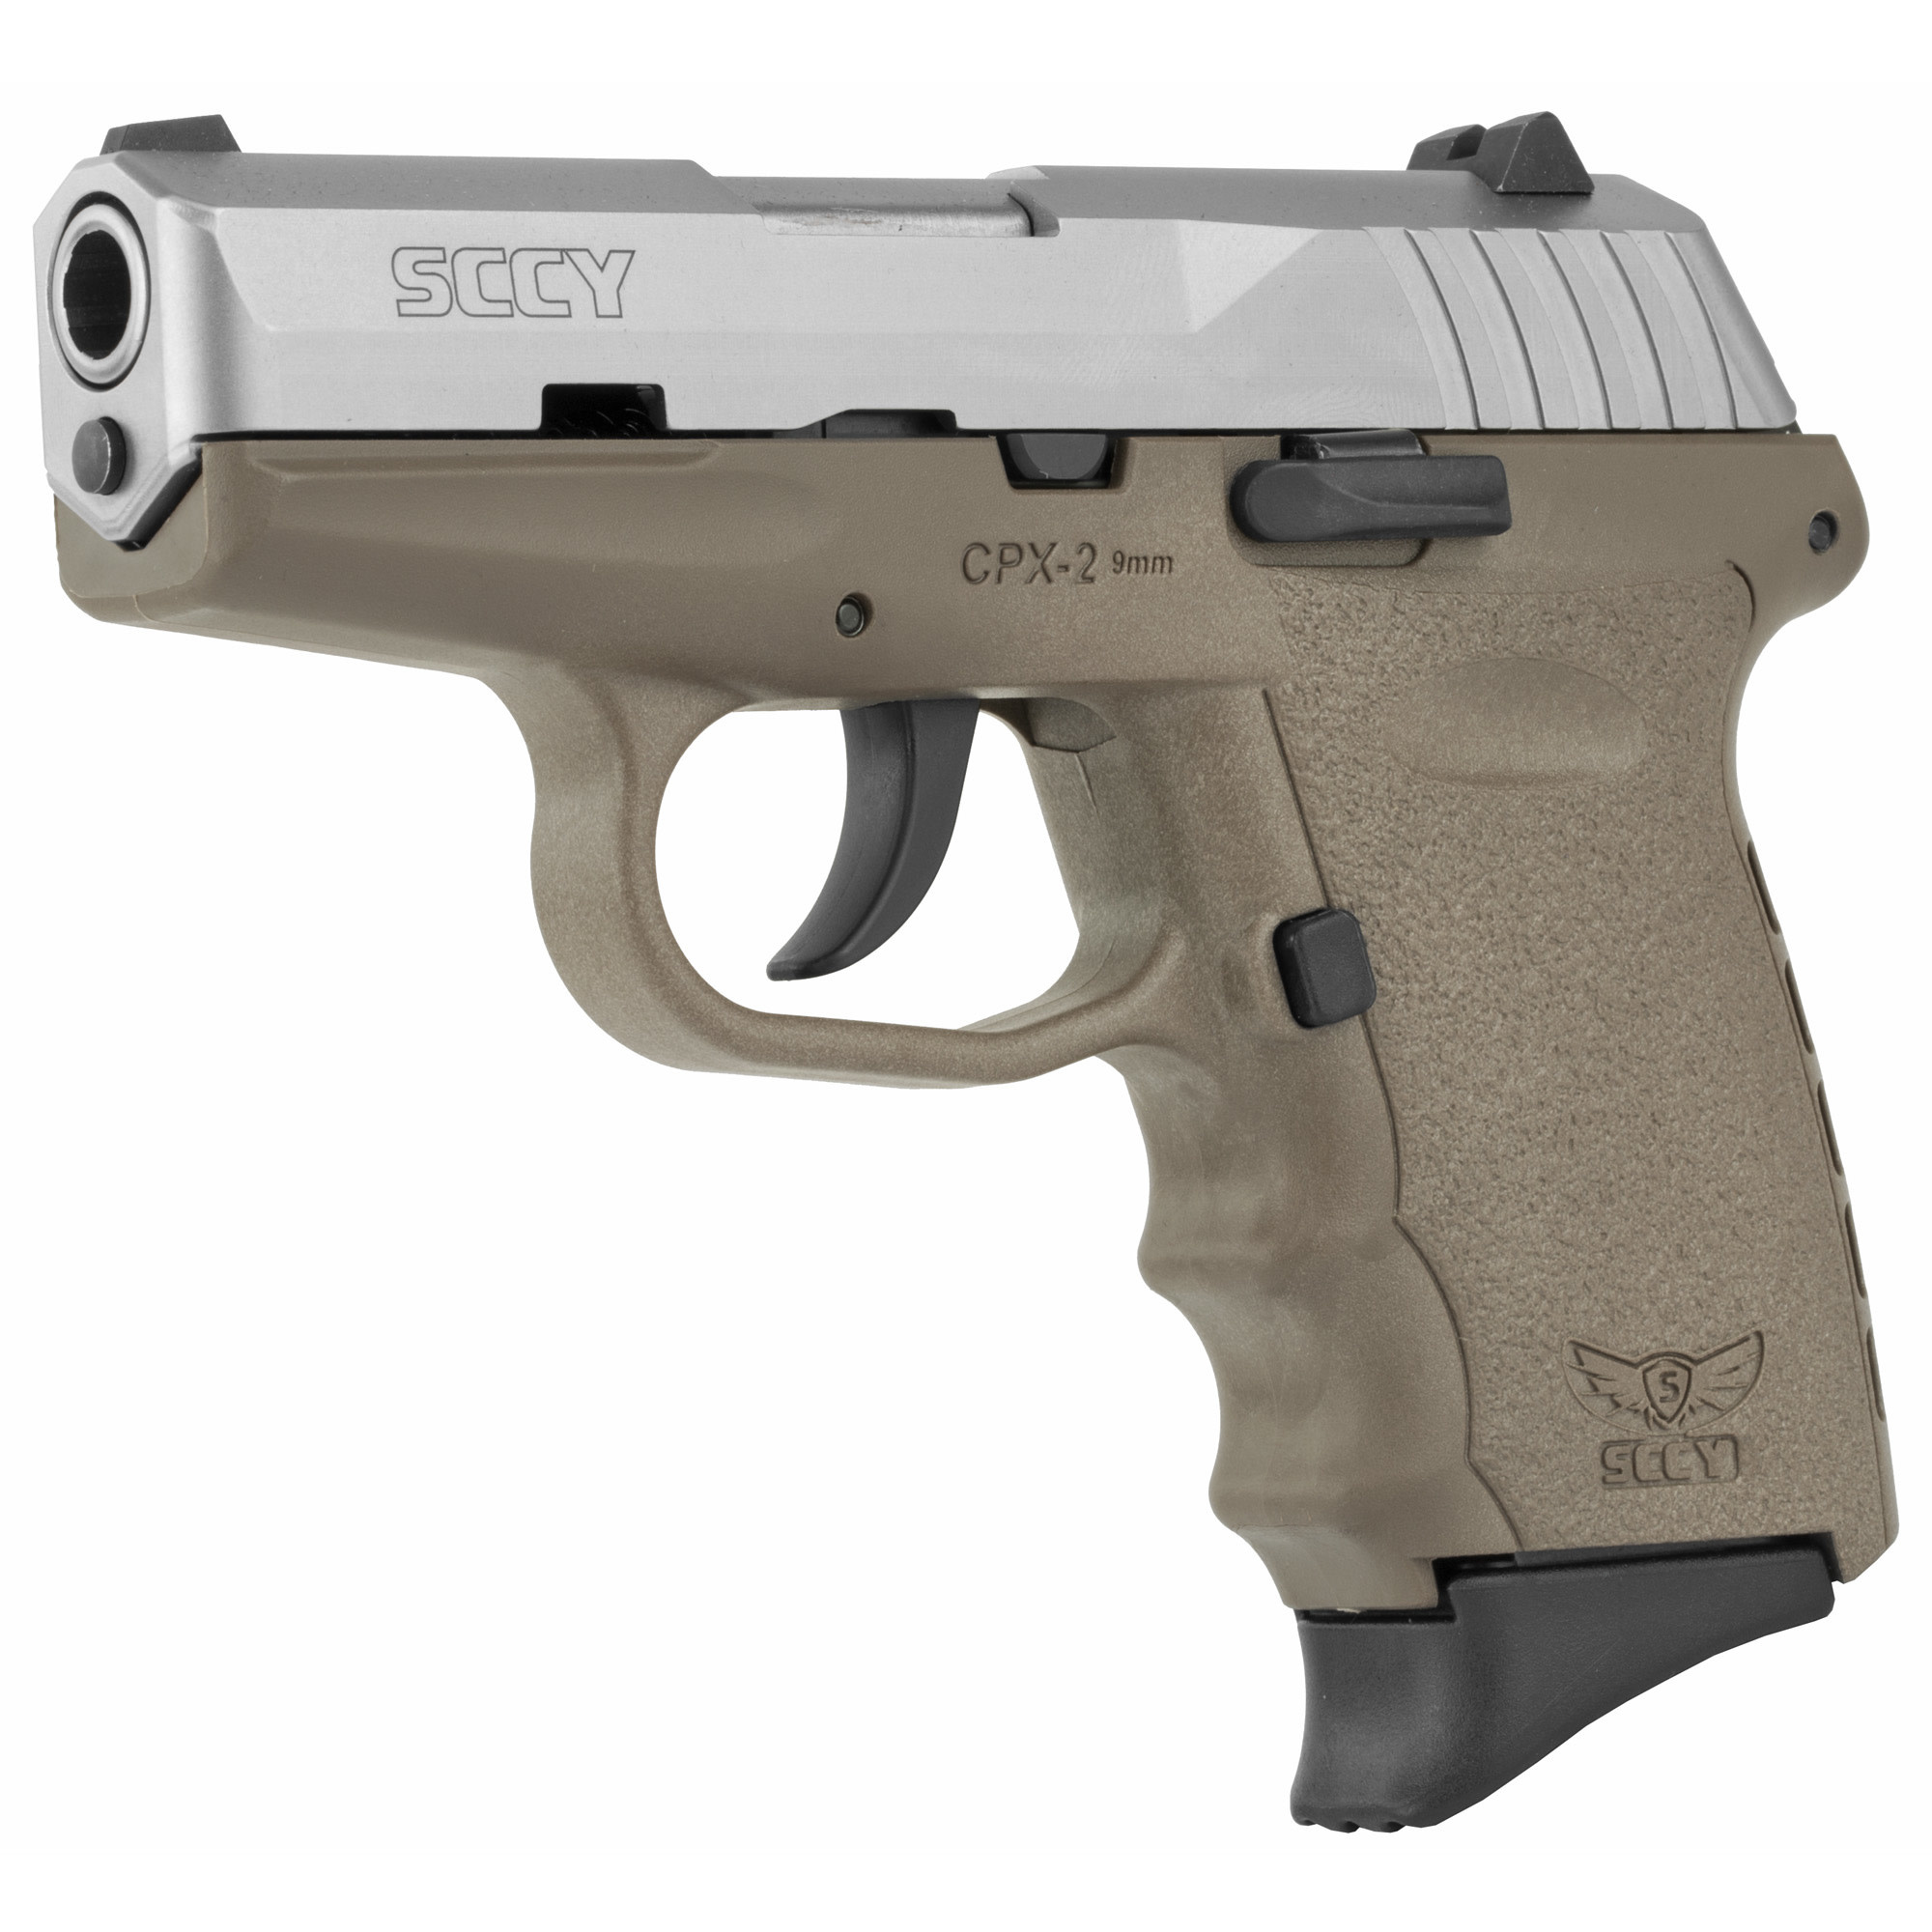 SCCY, CPX-2, Compact, 9MM, Satin and FDE Finish, 10Rd, 2 Magazines